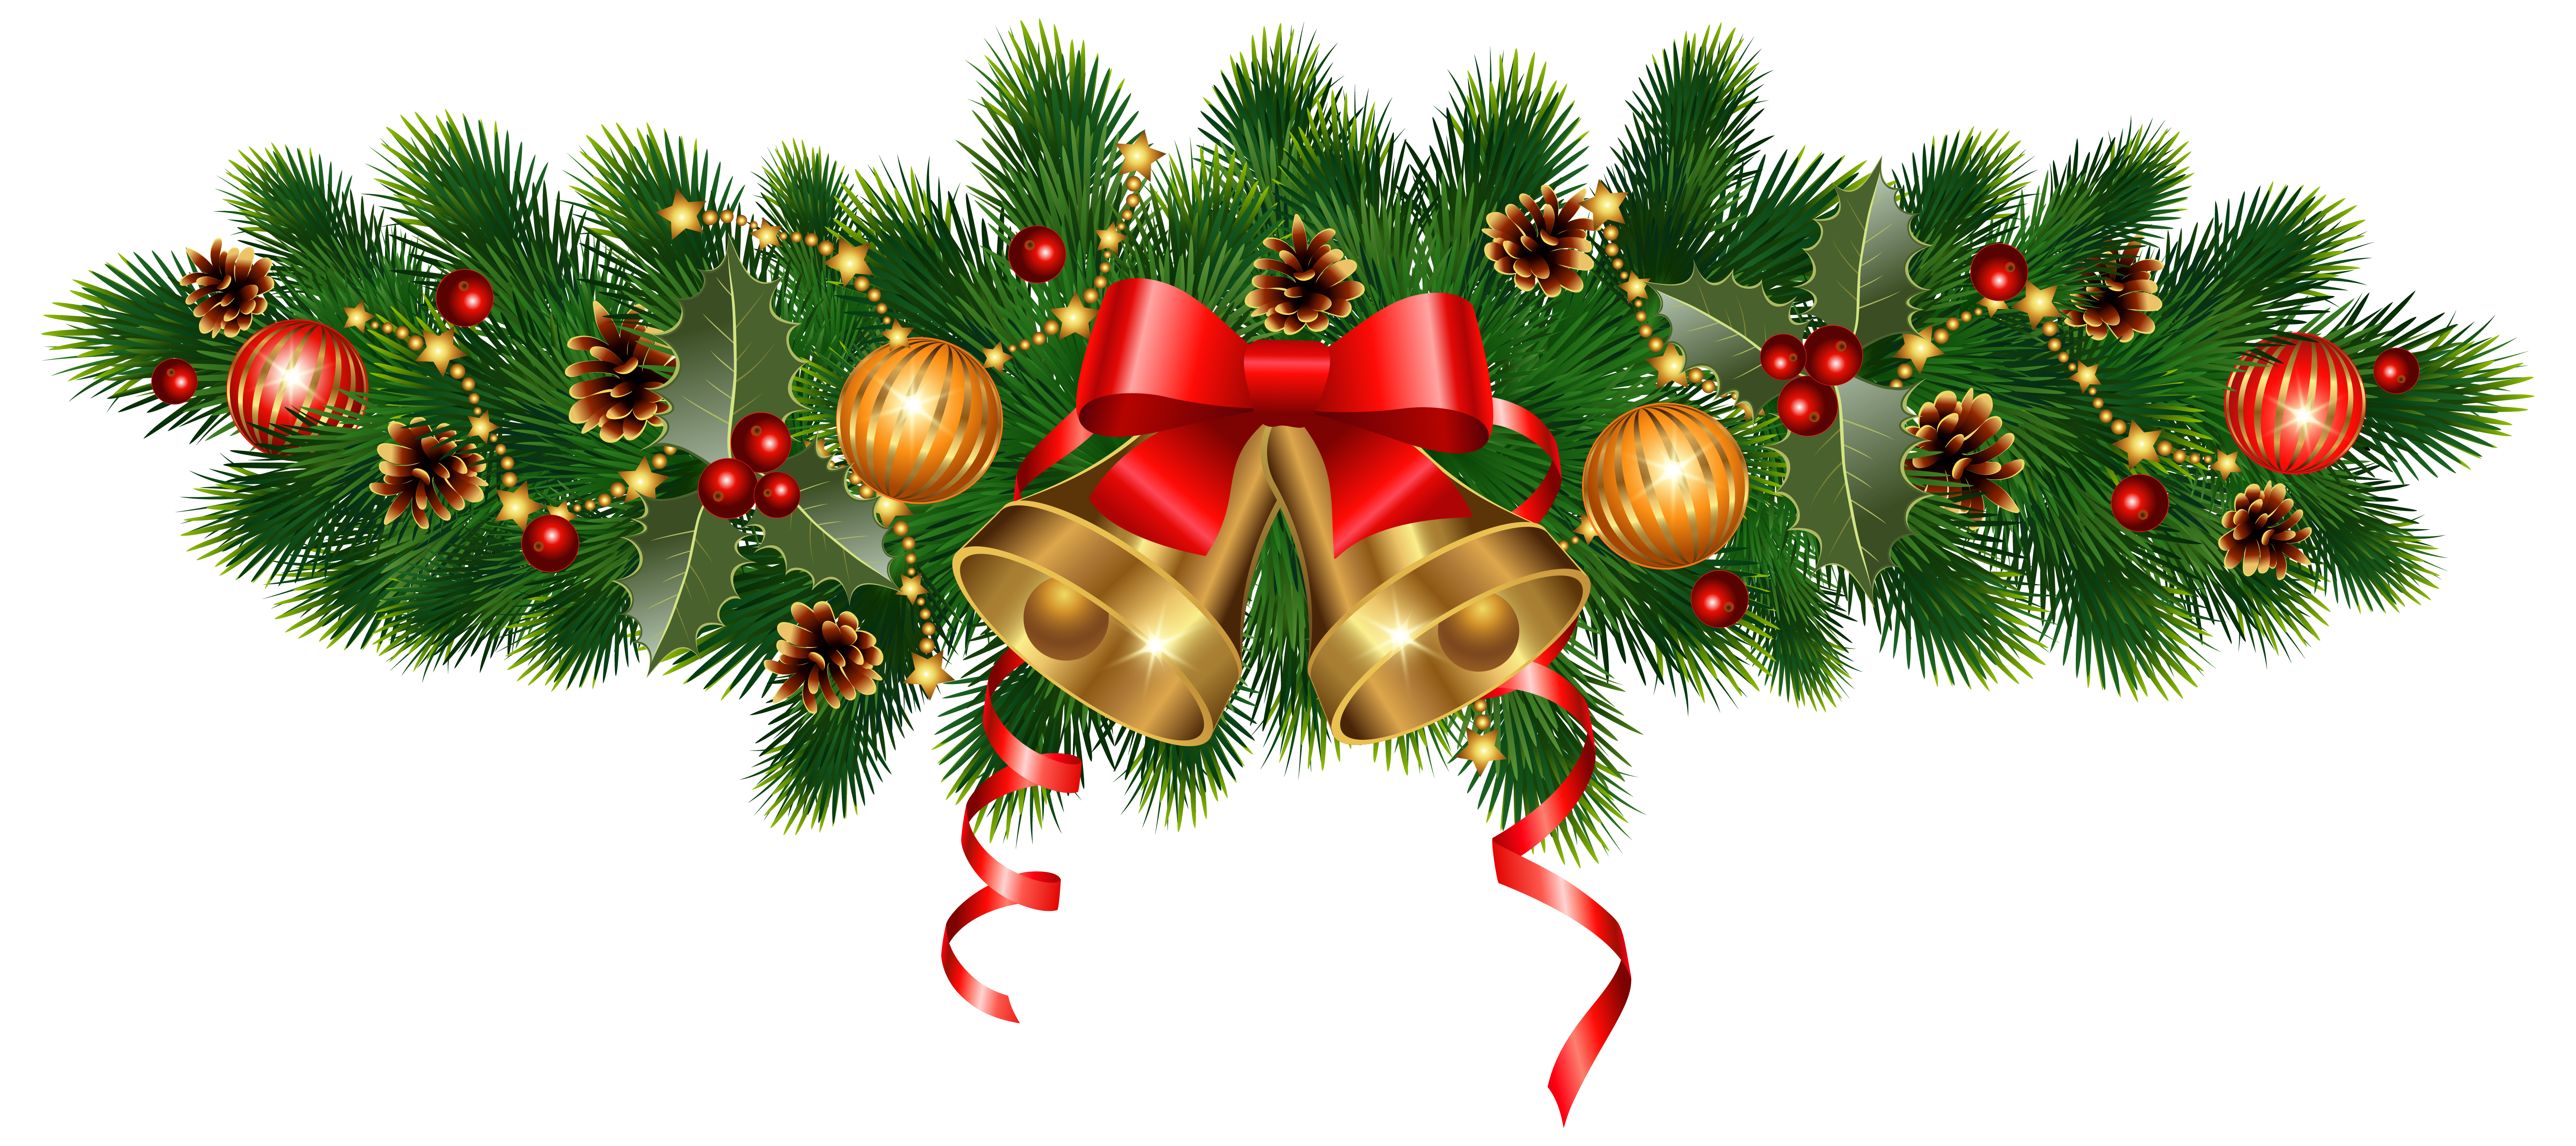 Bell clipart christmas tree decoration Size Christmas Image Golden